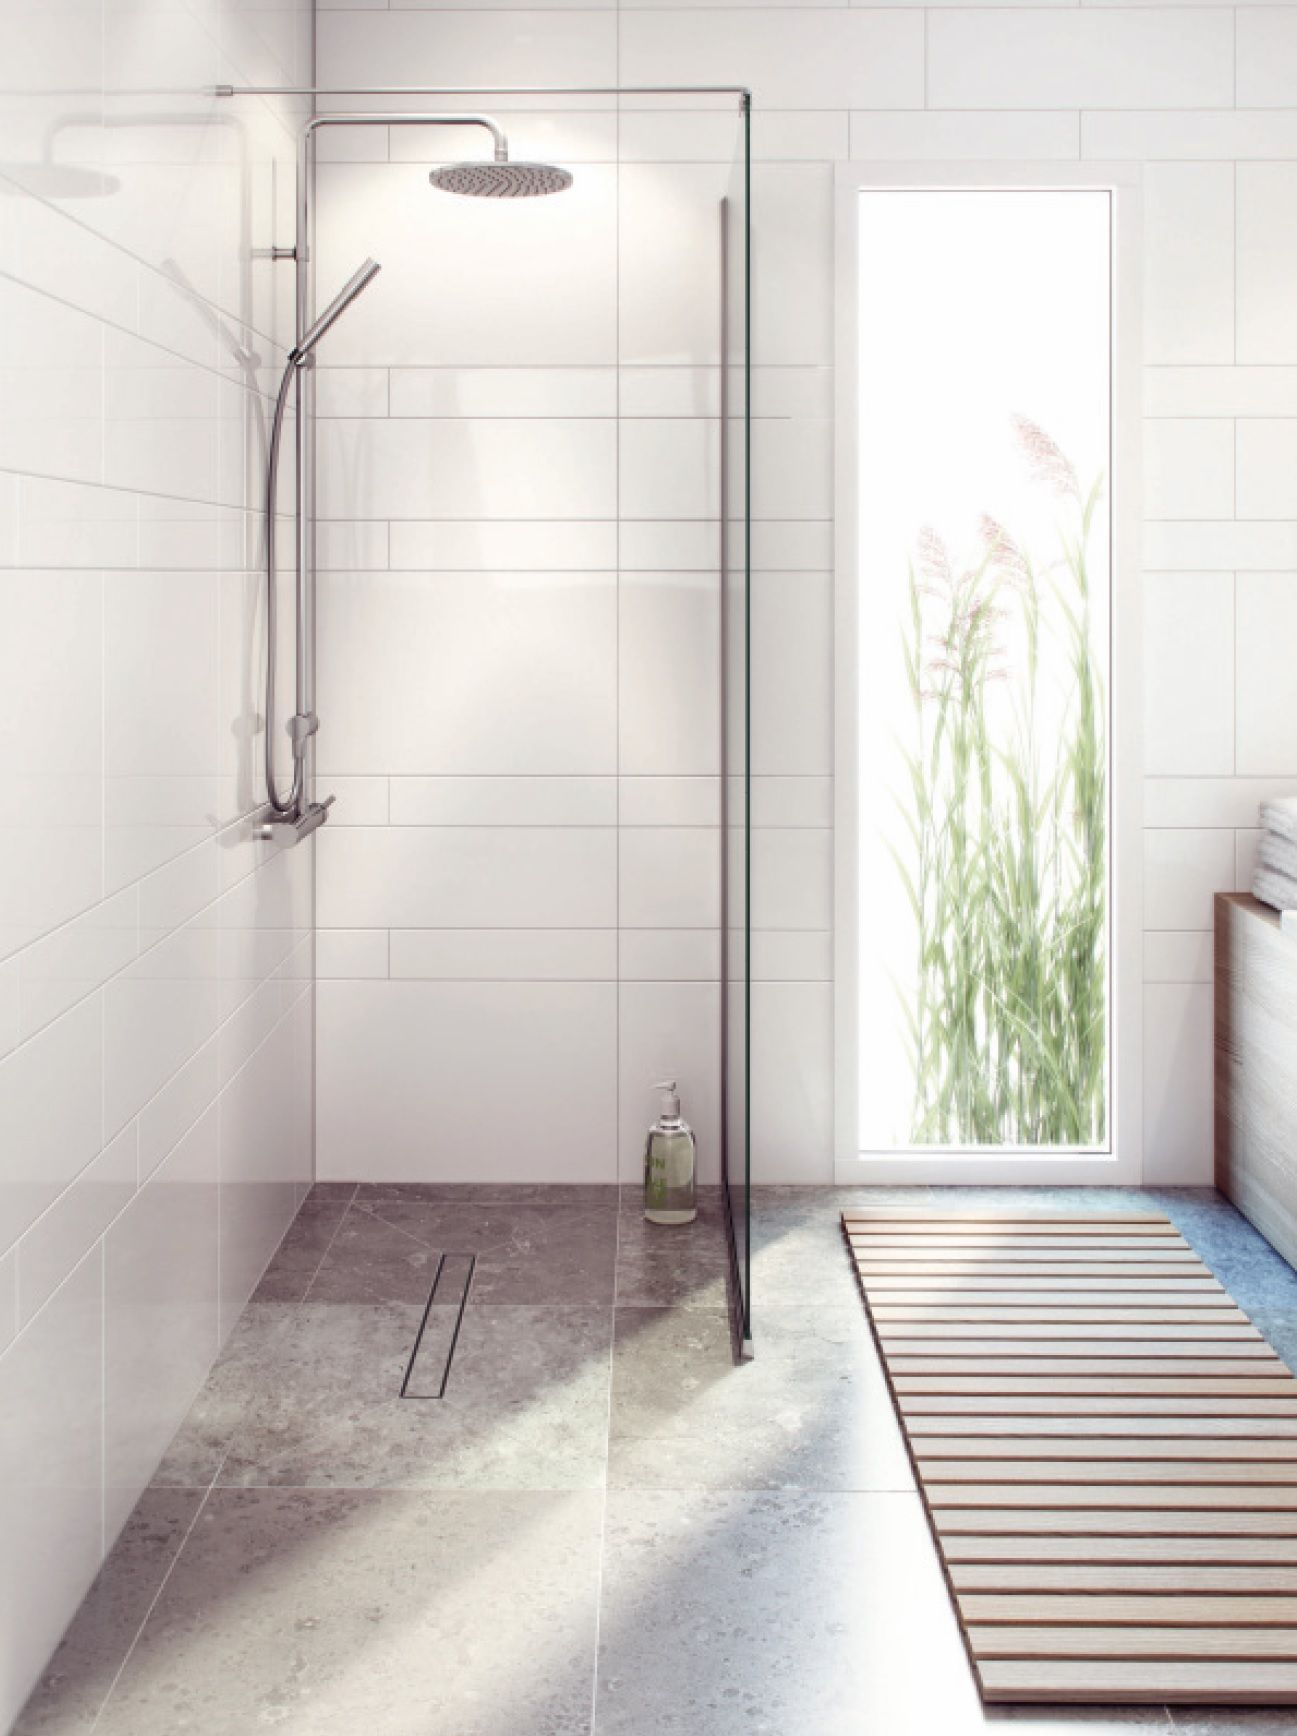 Wet Room Ideas With A Scandinavian Touch Using The 4k